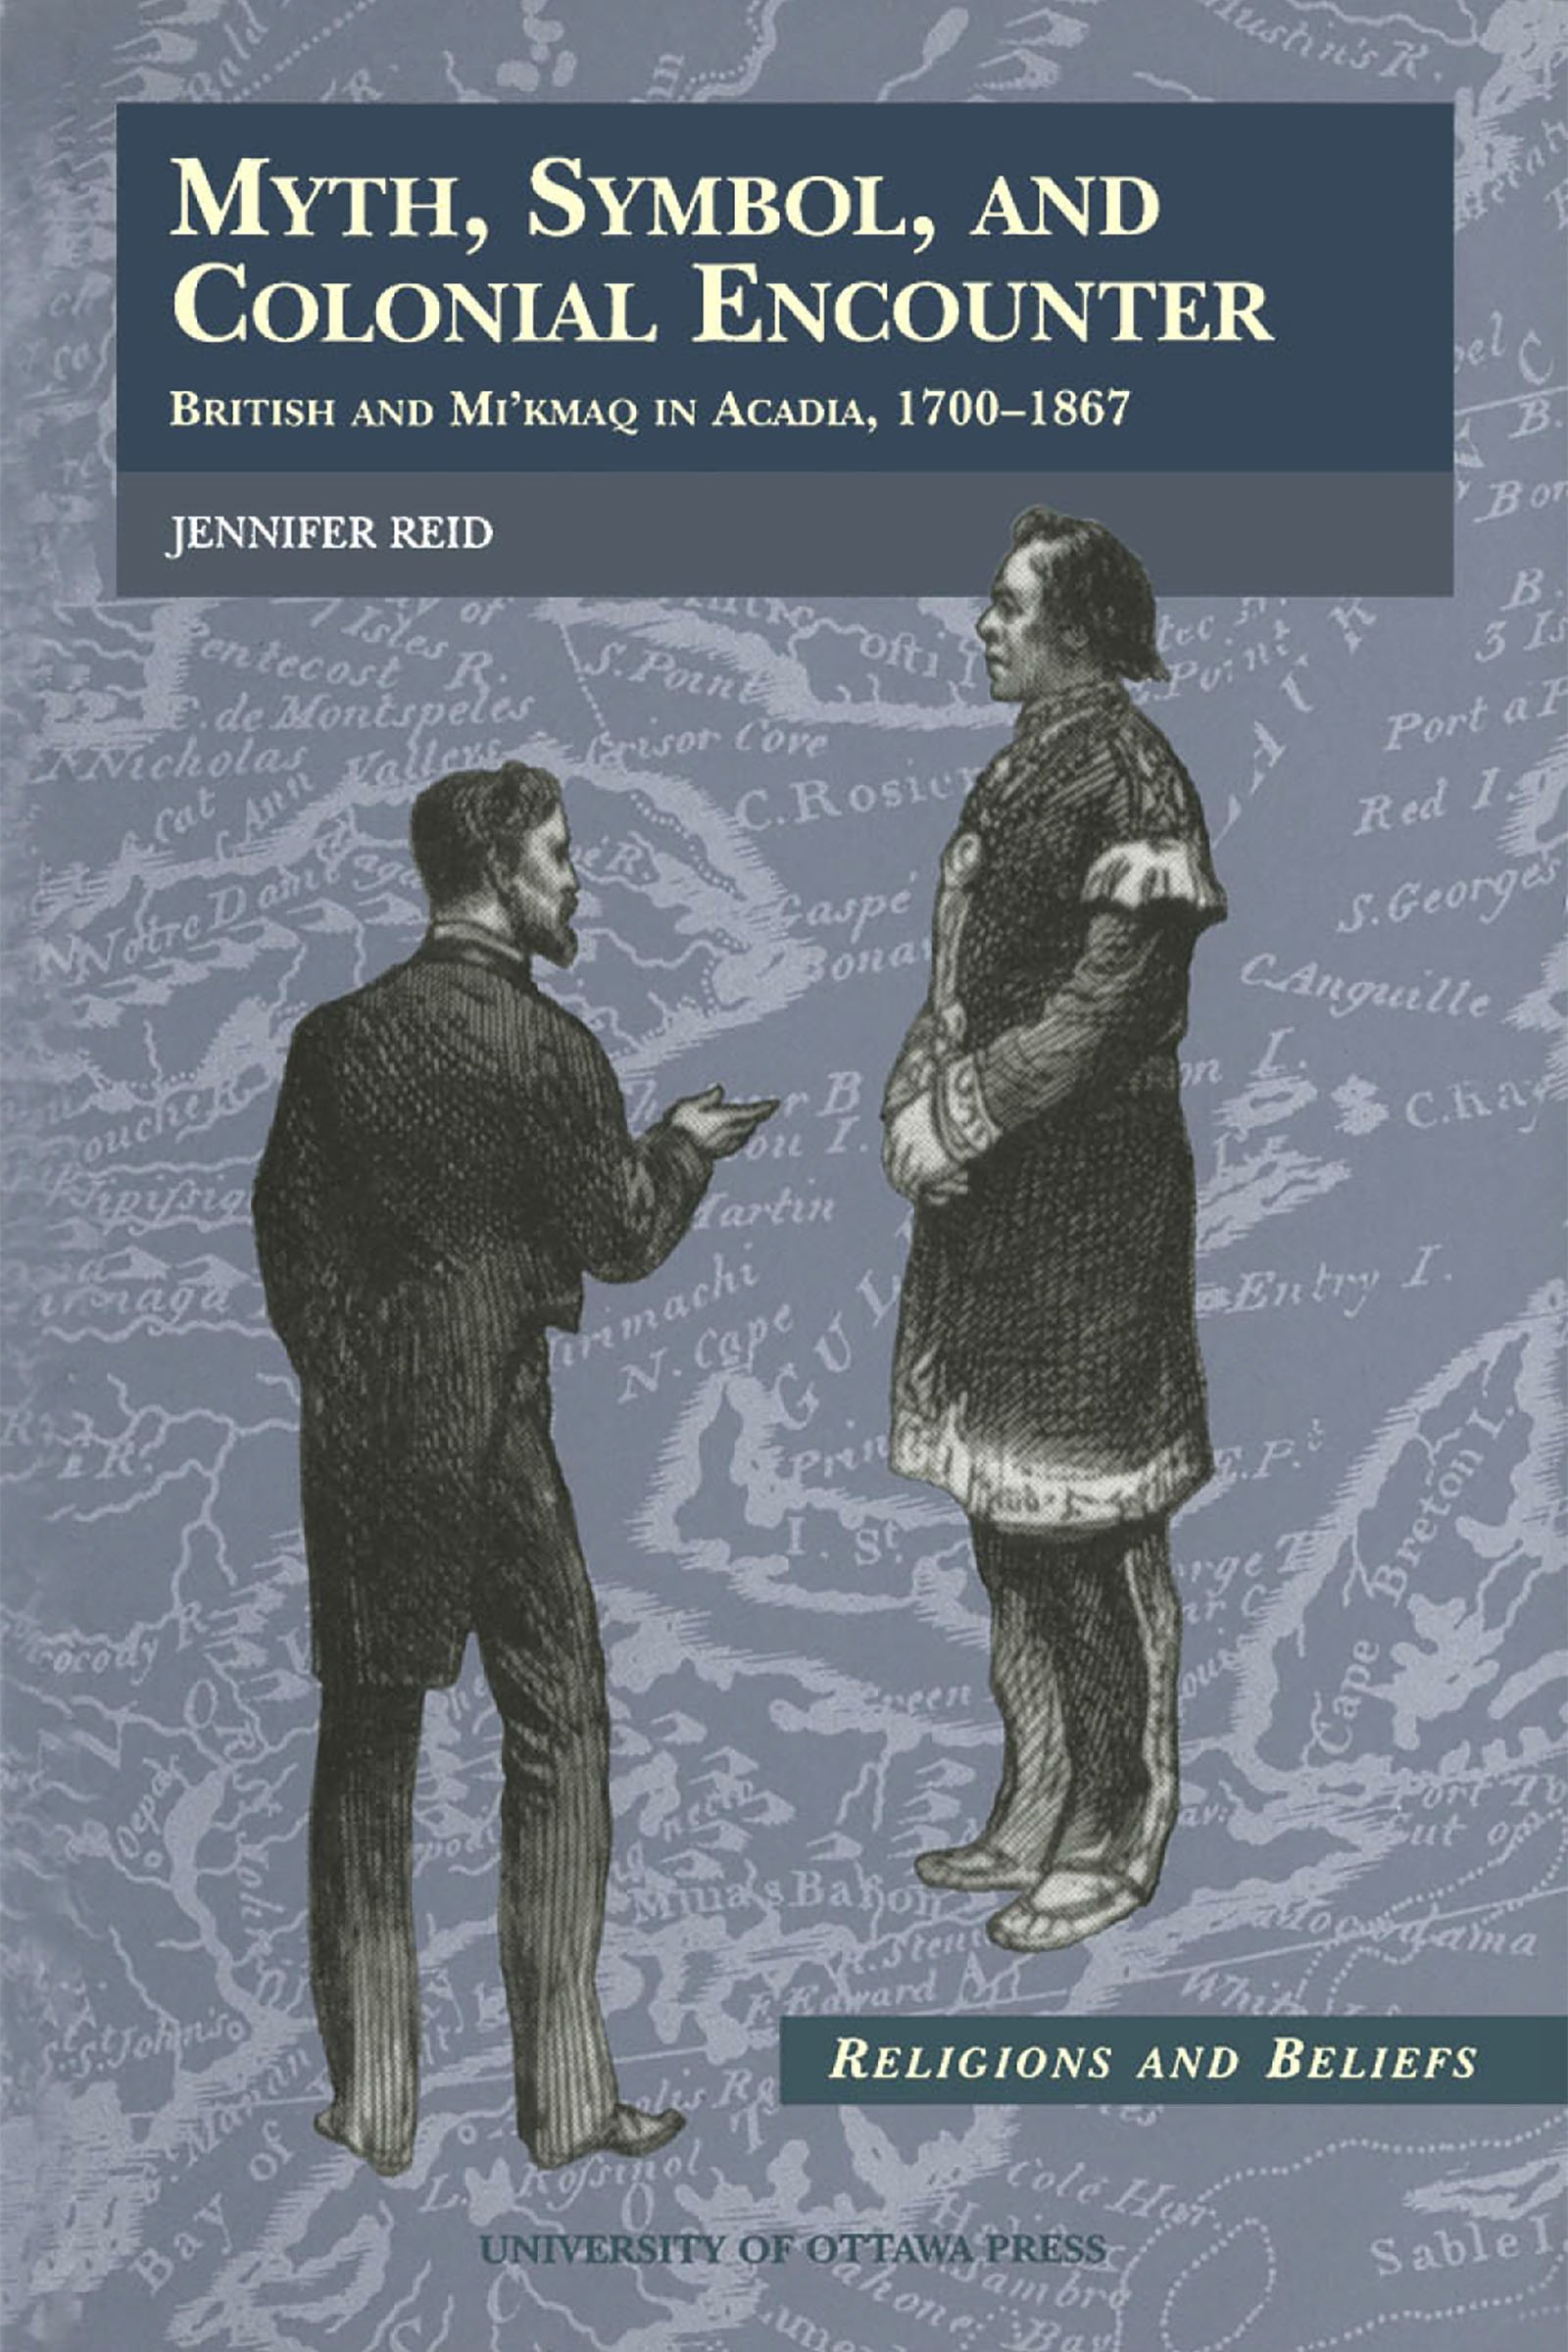 Myth, Symbol, and Colonial Encounter: British and Mi'kmaq in Acadia, 1700-1867 (Religion and Beliefs Series)